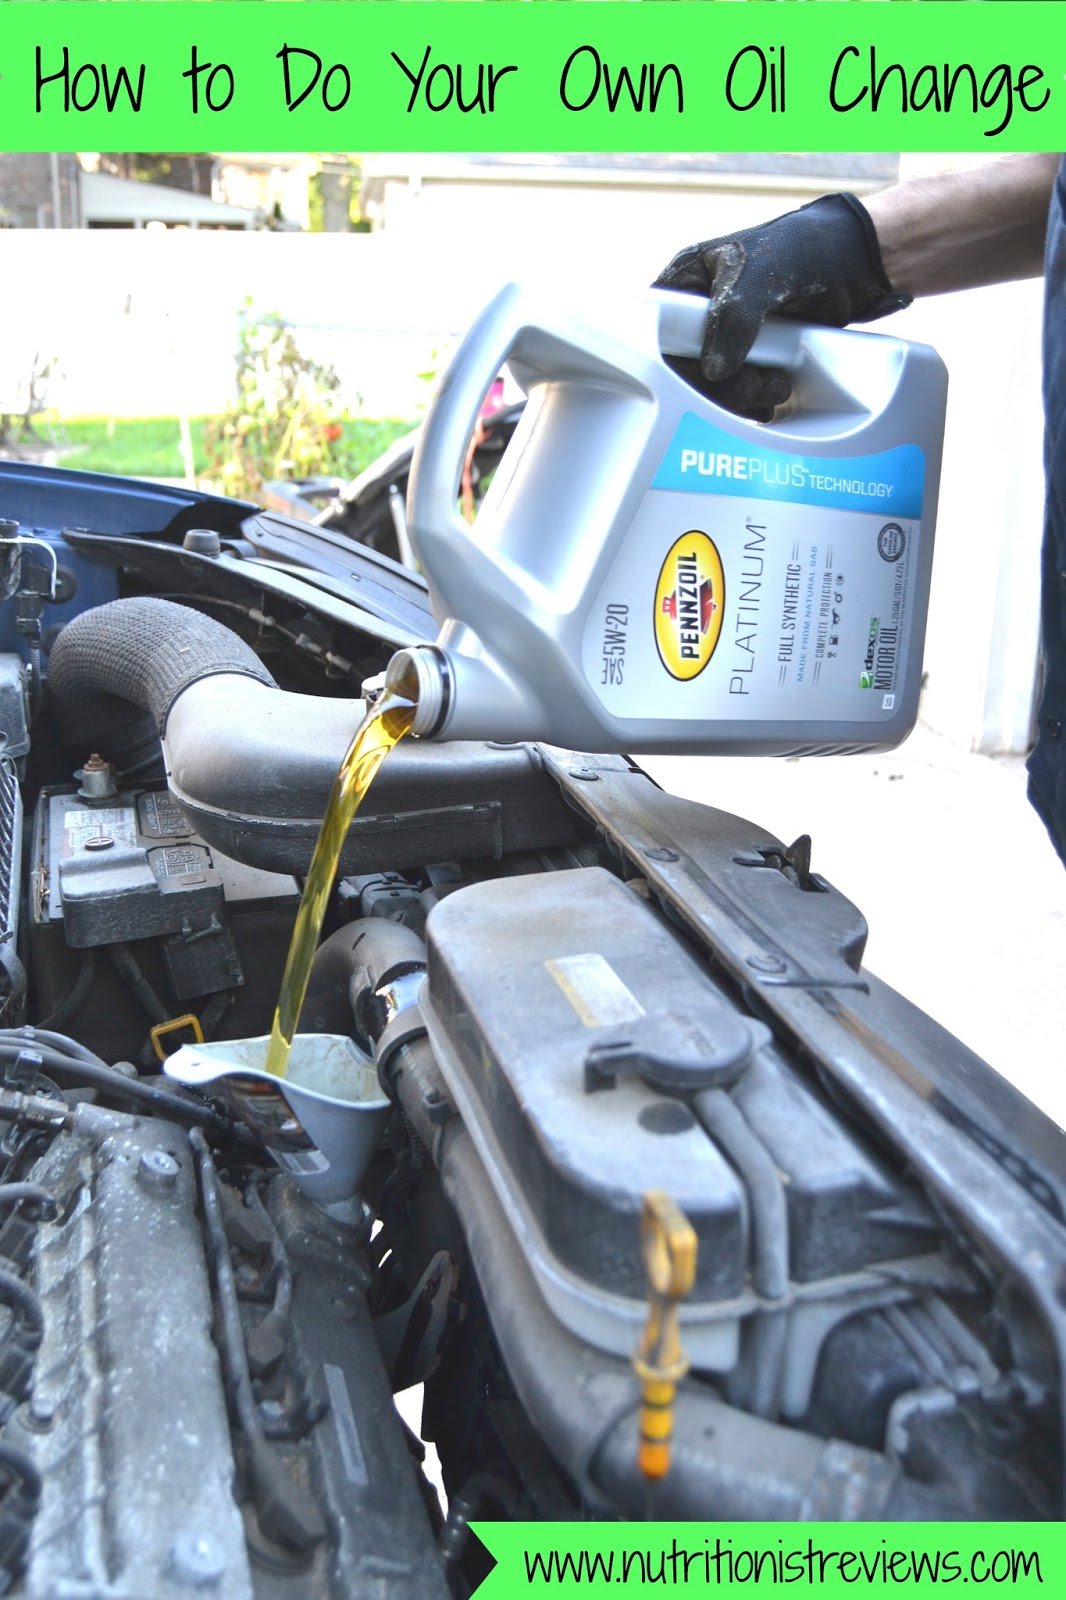 How To Do An Oil Change >> How To Do Your Own Oil Change The Nutritionist Reviews